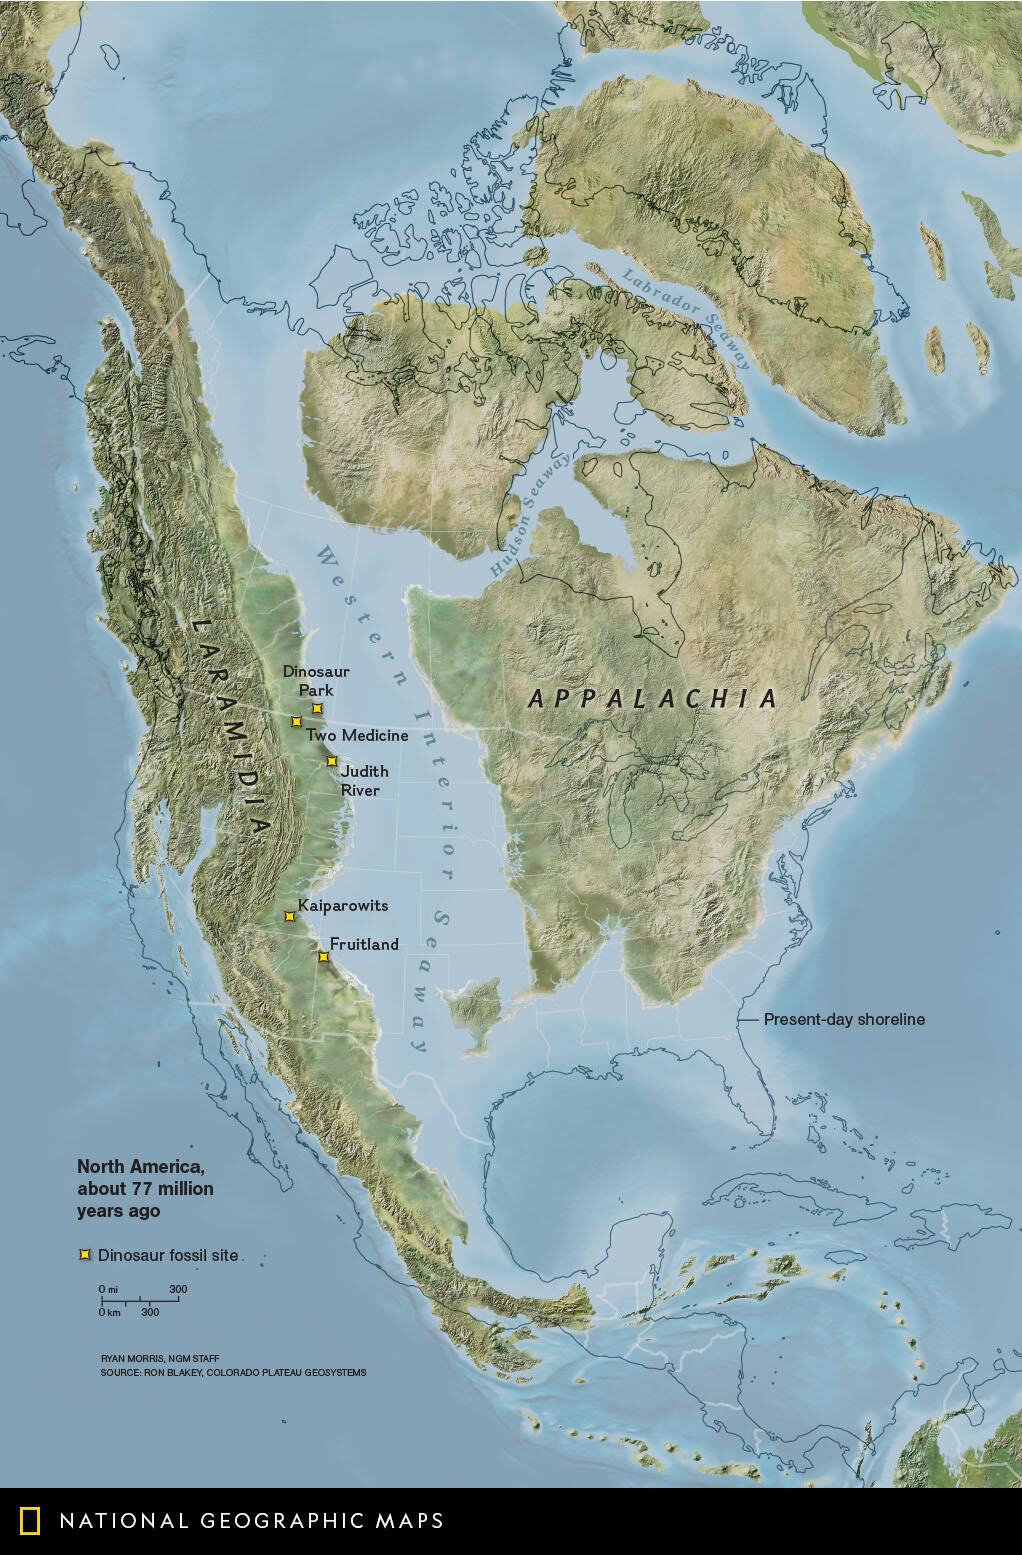 North America about 77 million years ago